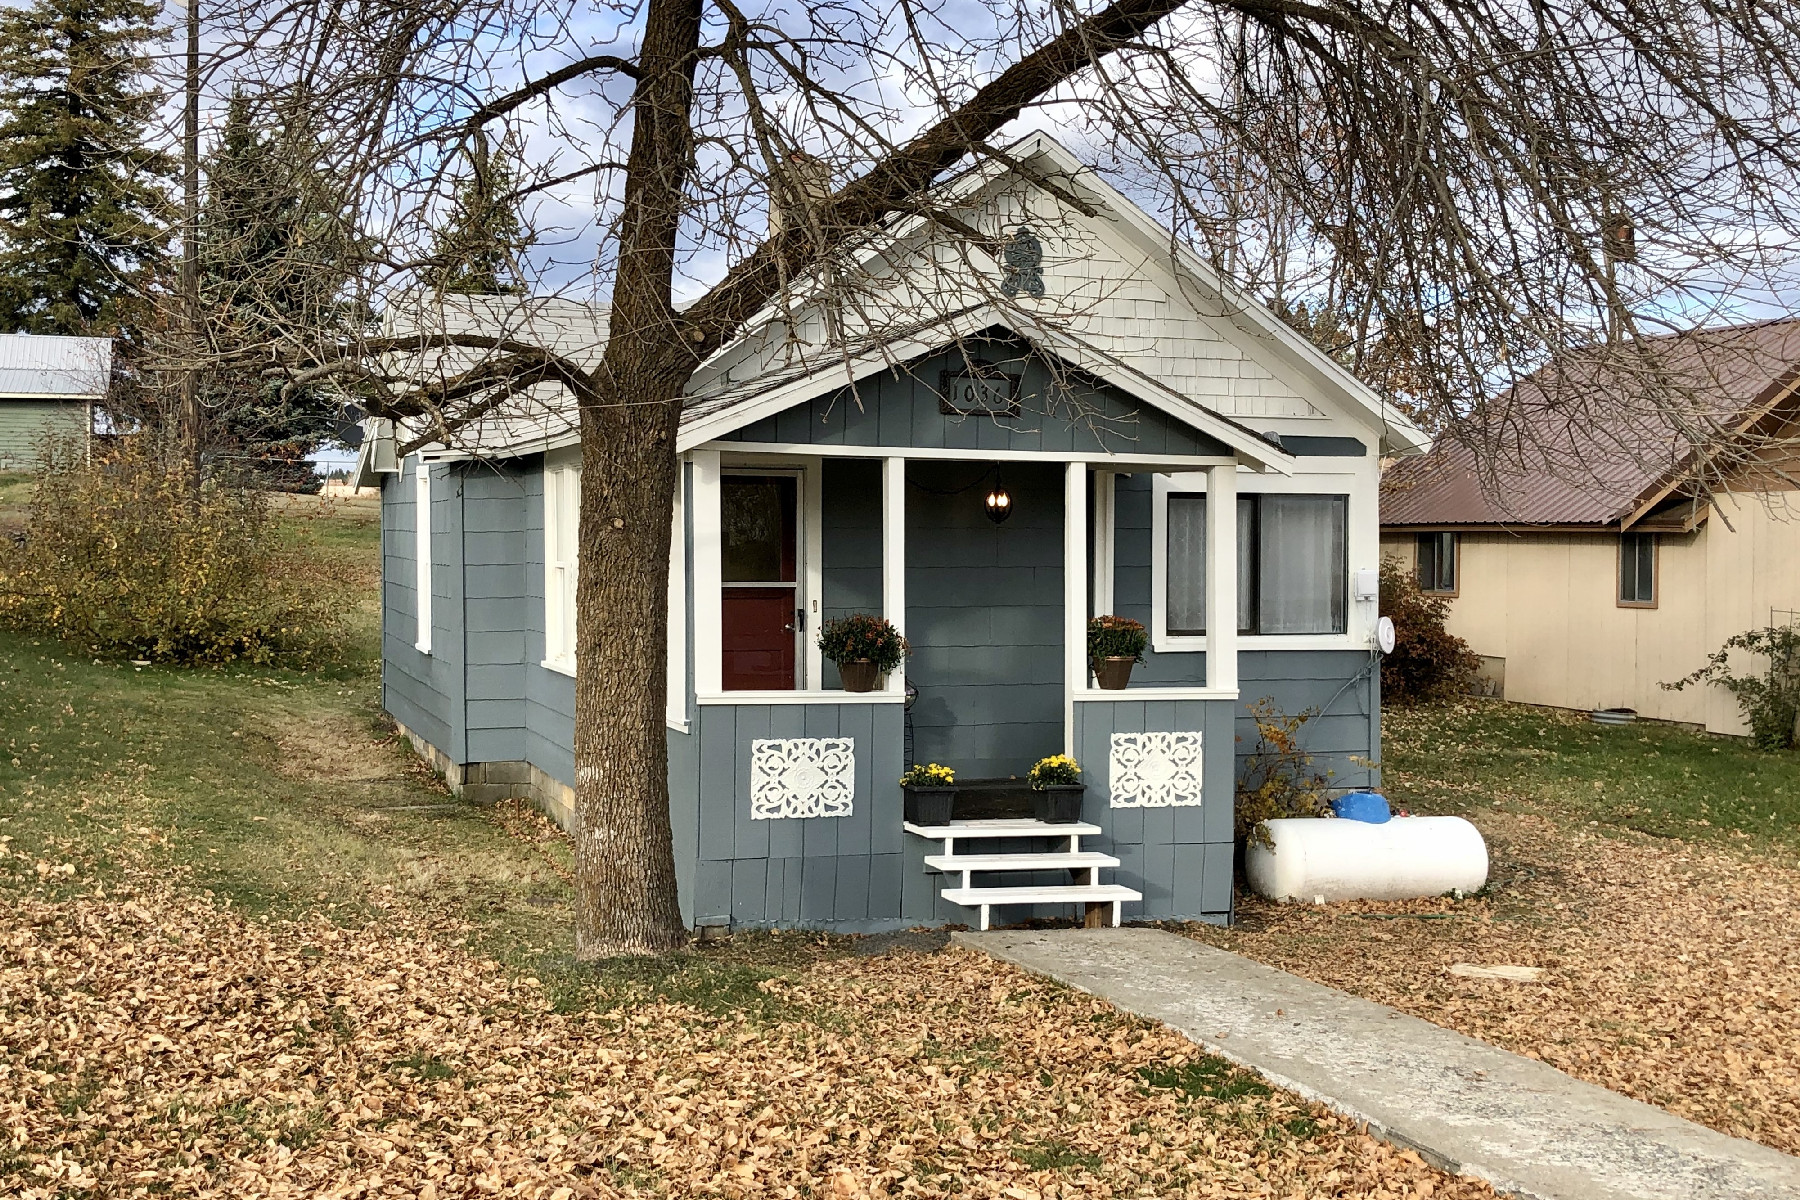 Single Family Homes for Sale at Fantastic Updated Bungalow Move-In Ready 1036 D St Plummer, Idaho 83851 United States